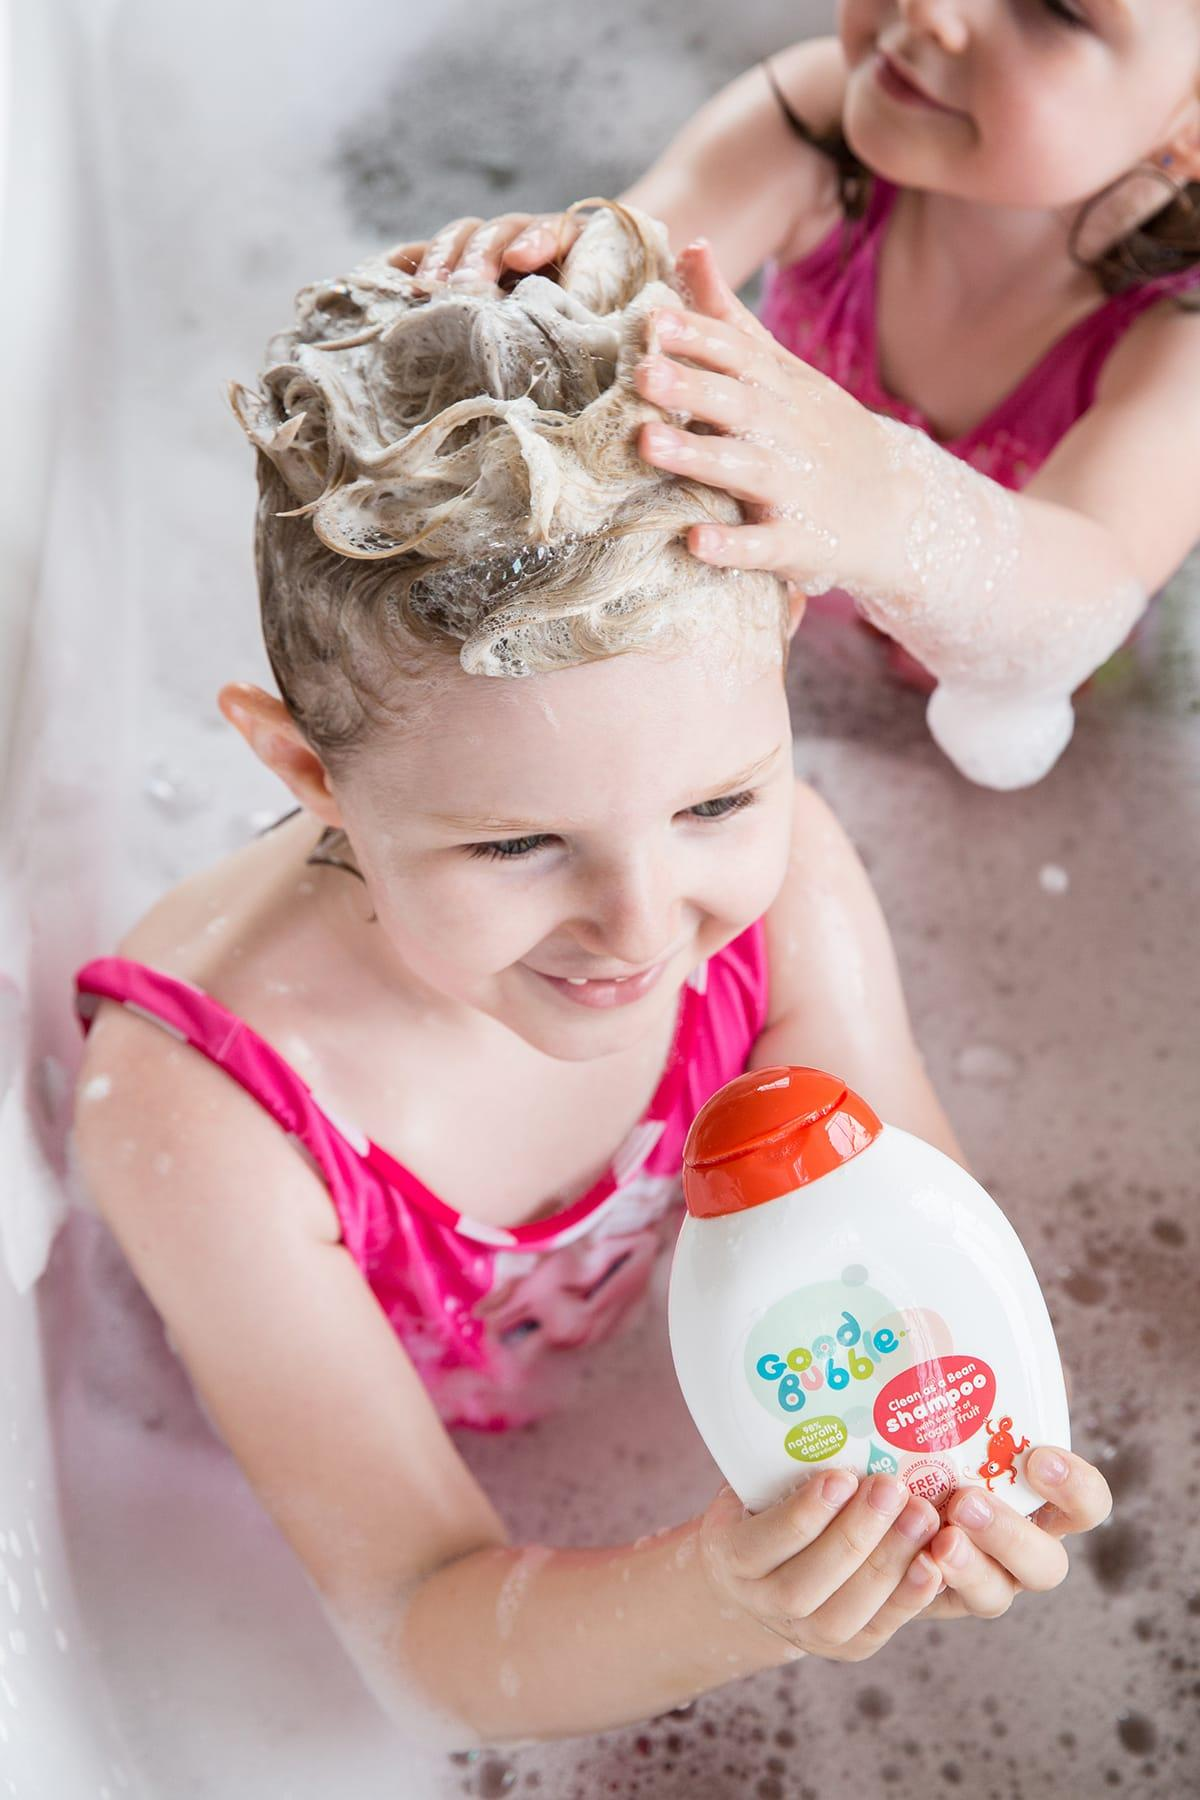 Clean As A Bean Shampoo With Dragon Fruit Extract Lifestyle